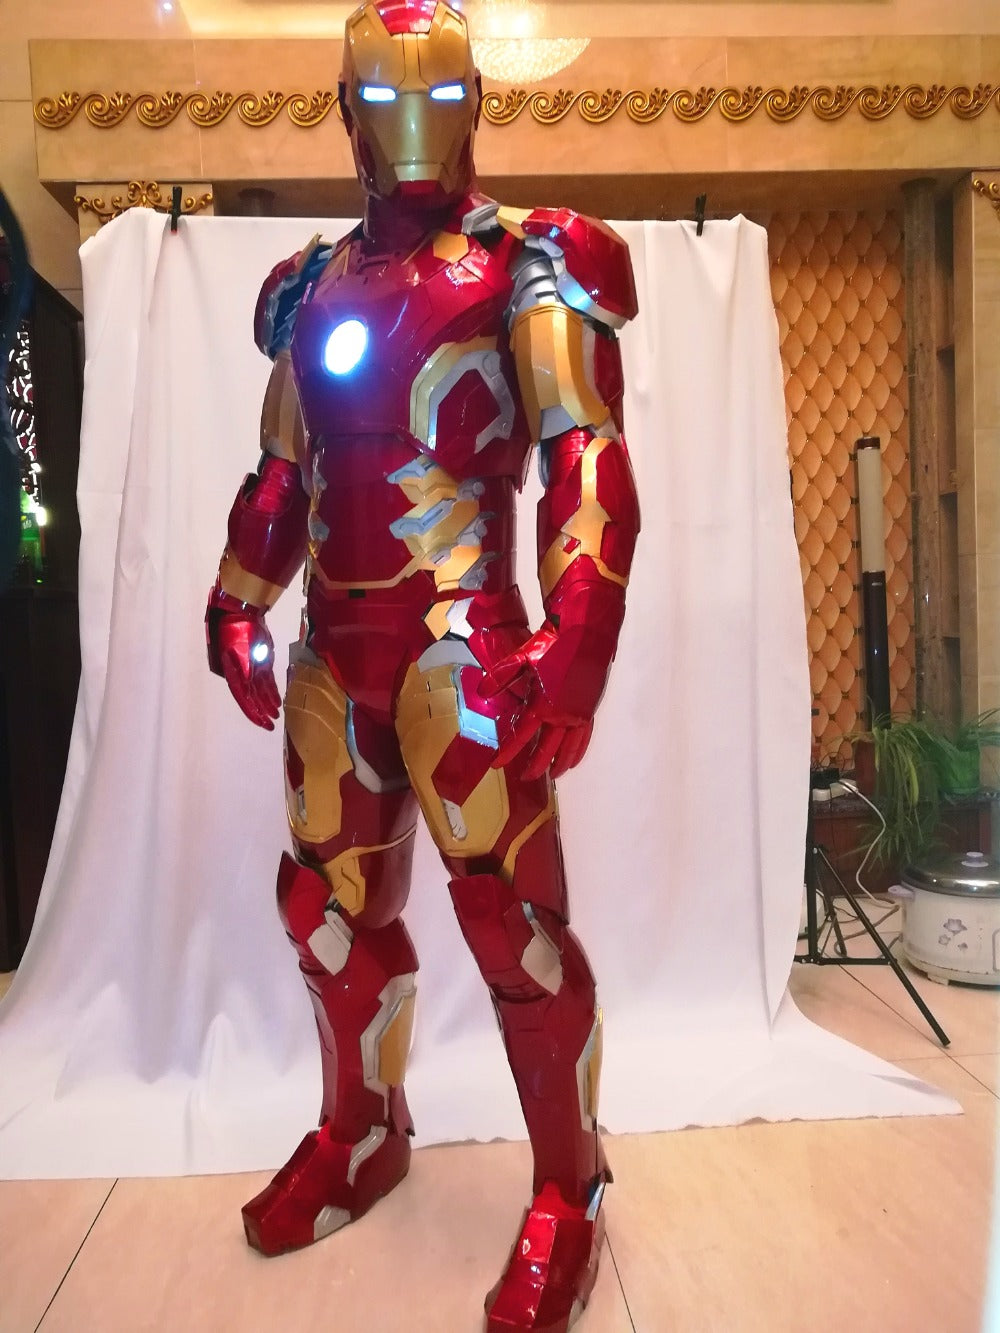 Iron Man MK43 Suit Iron Man Cosplay Costume  Wearable Armor